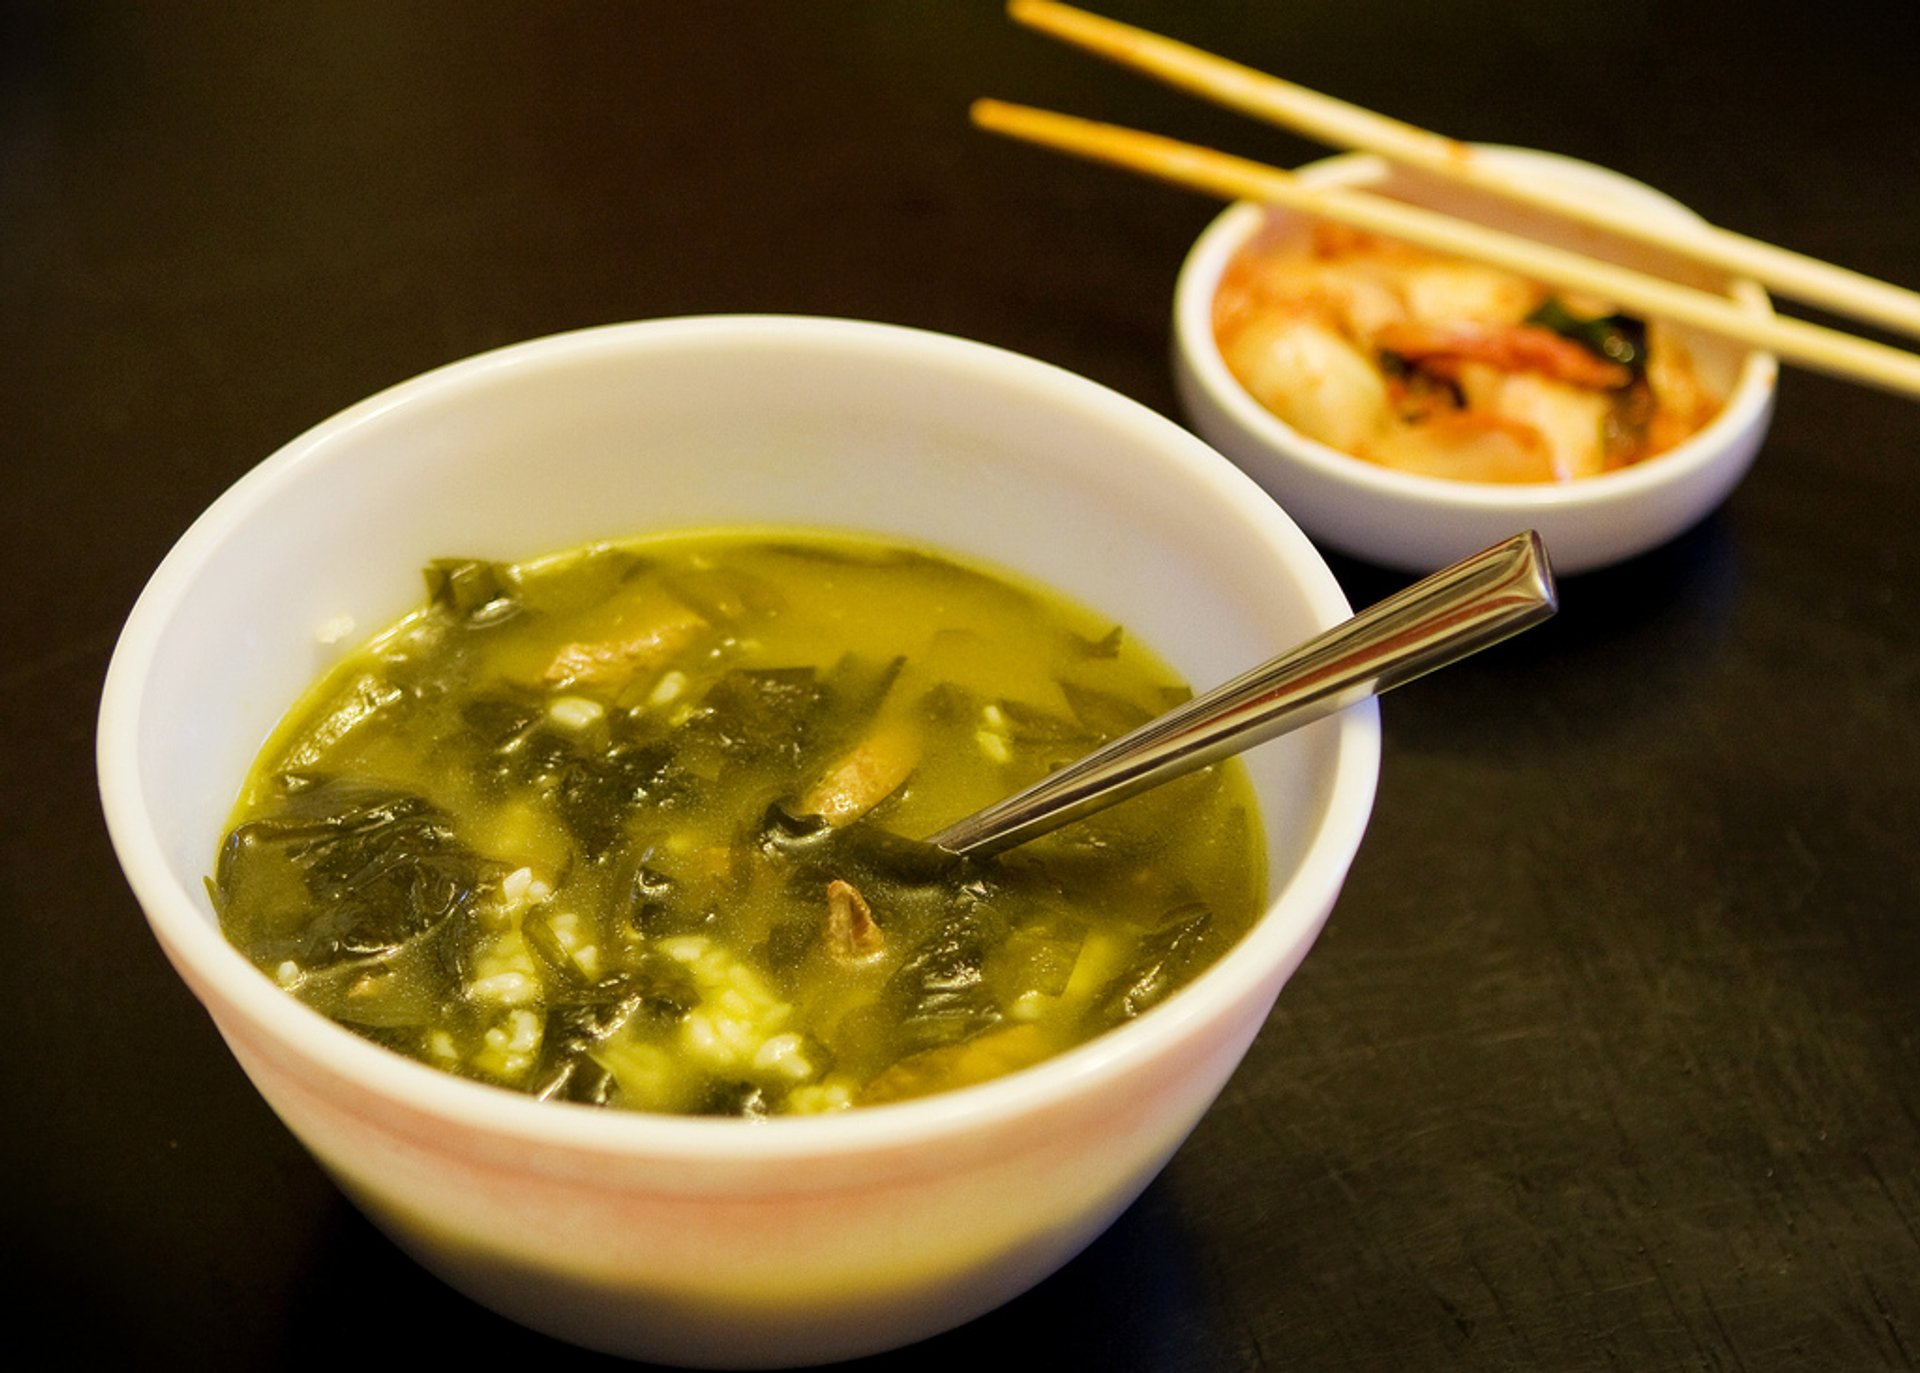 Seaweed Soup for Birthdays in South Korea 2020 - Best Time